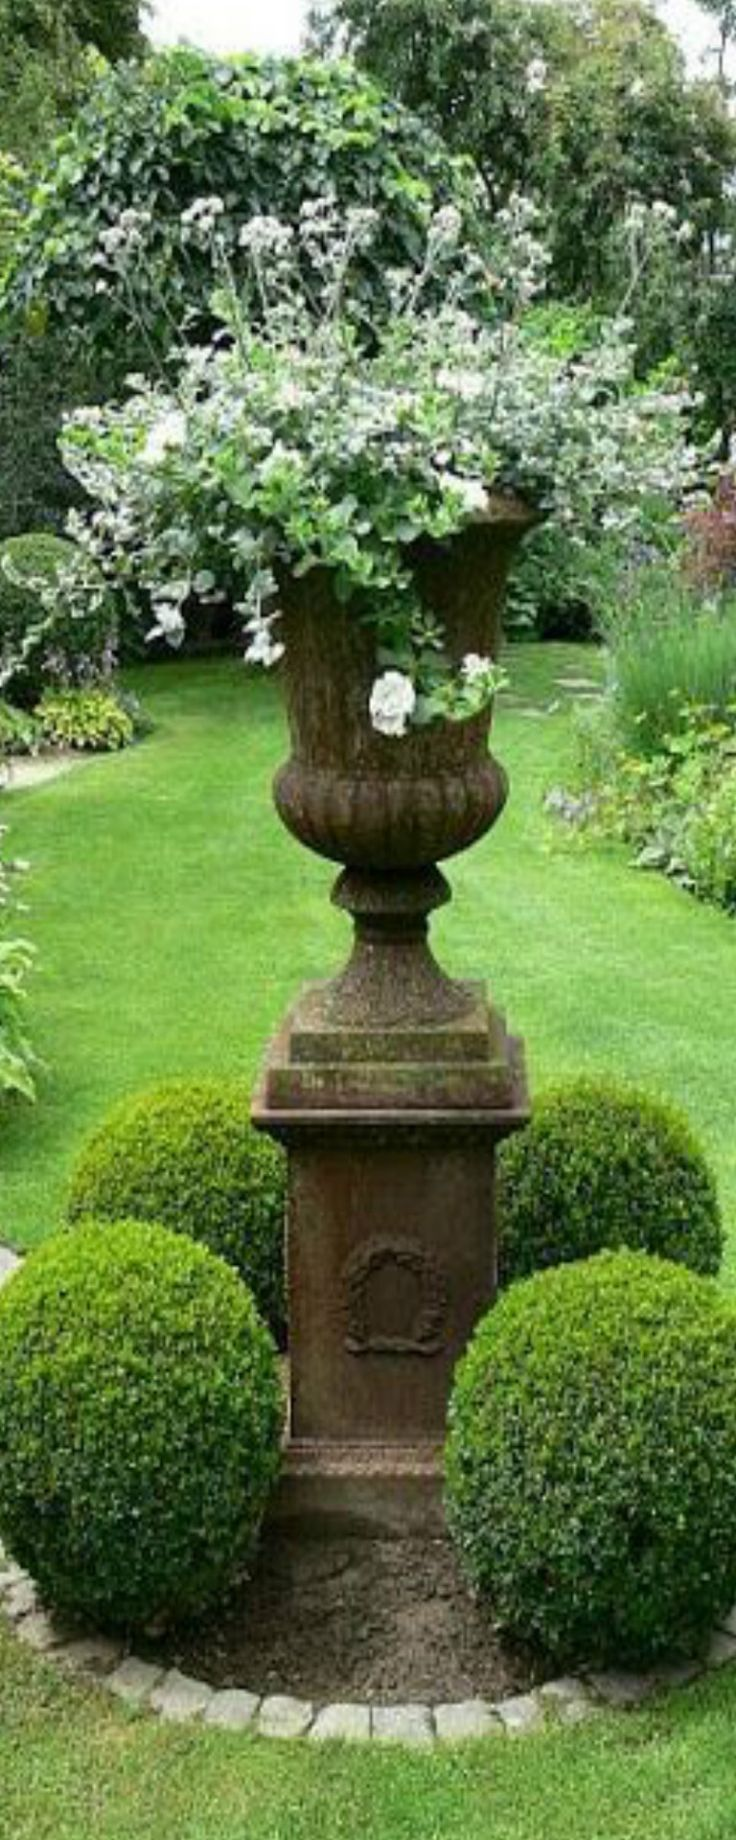 love the use of elevated garden urns surrounded by potted shrubs to create a garden / square effect.